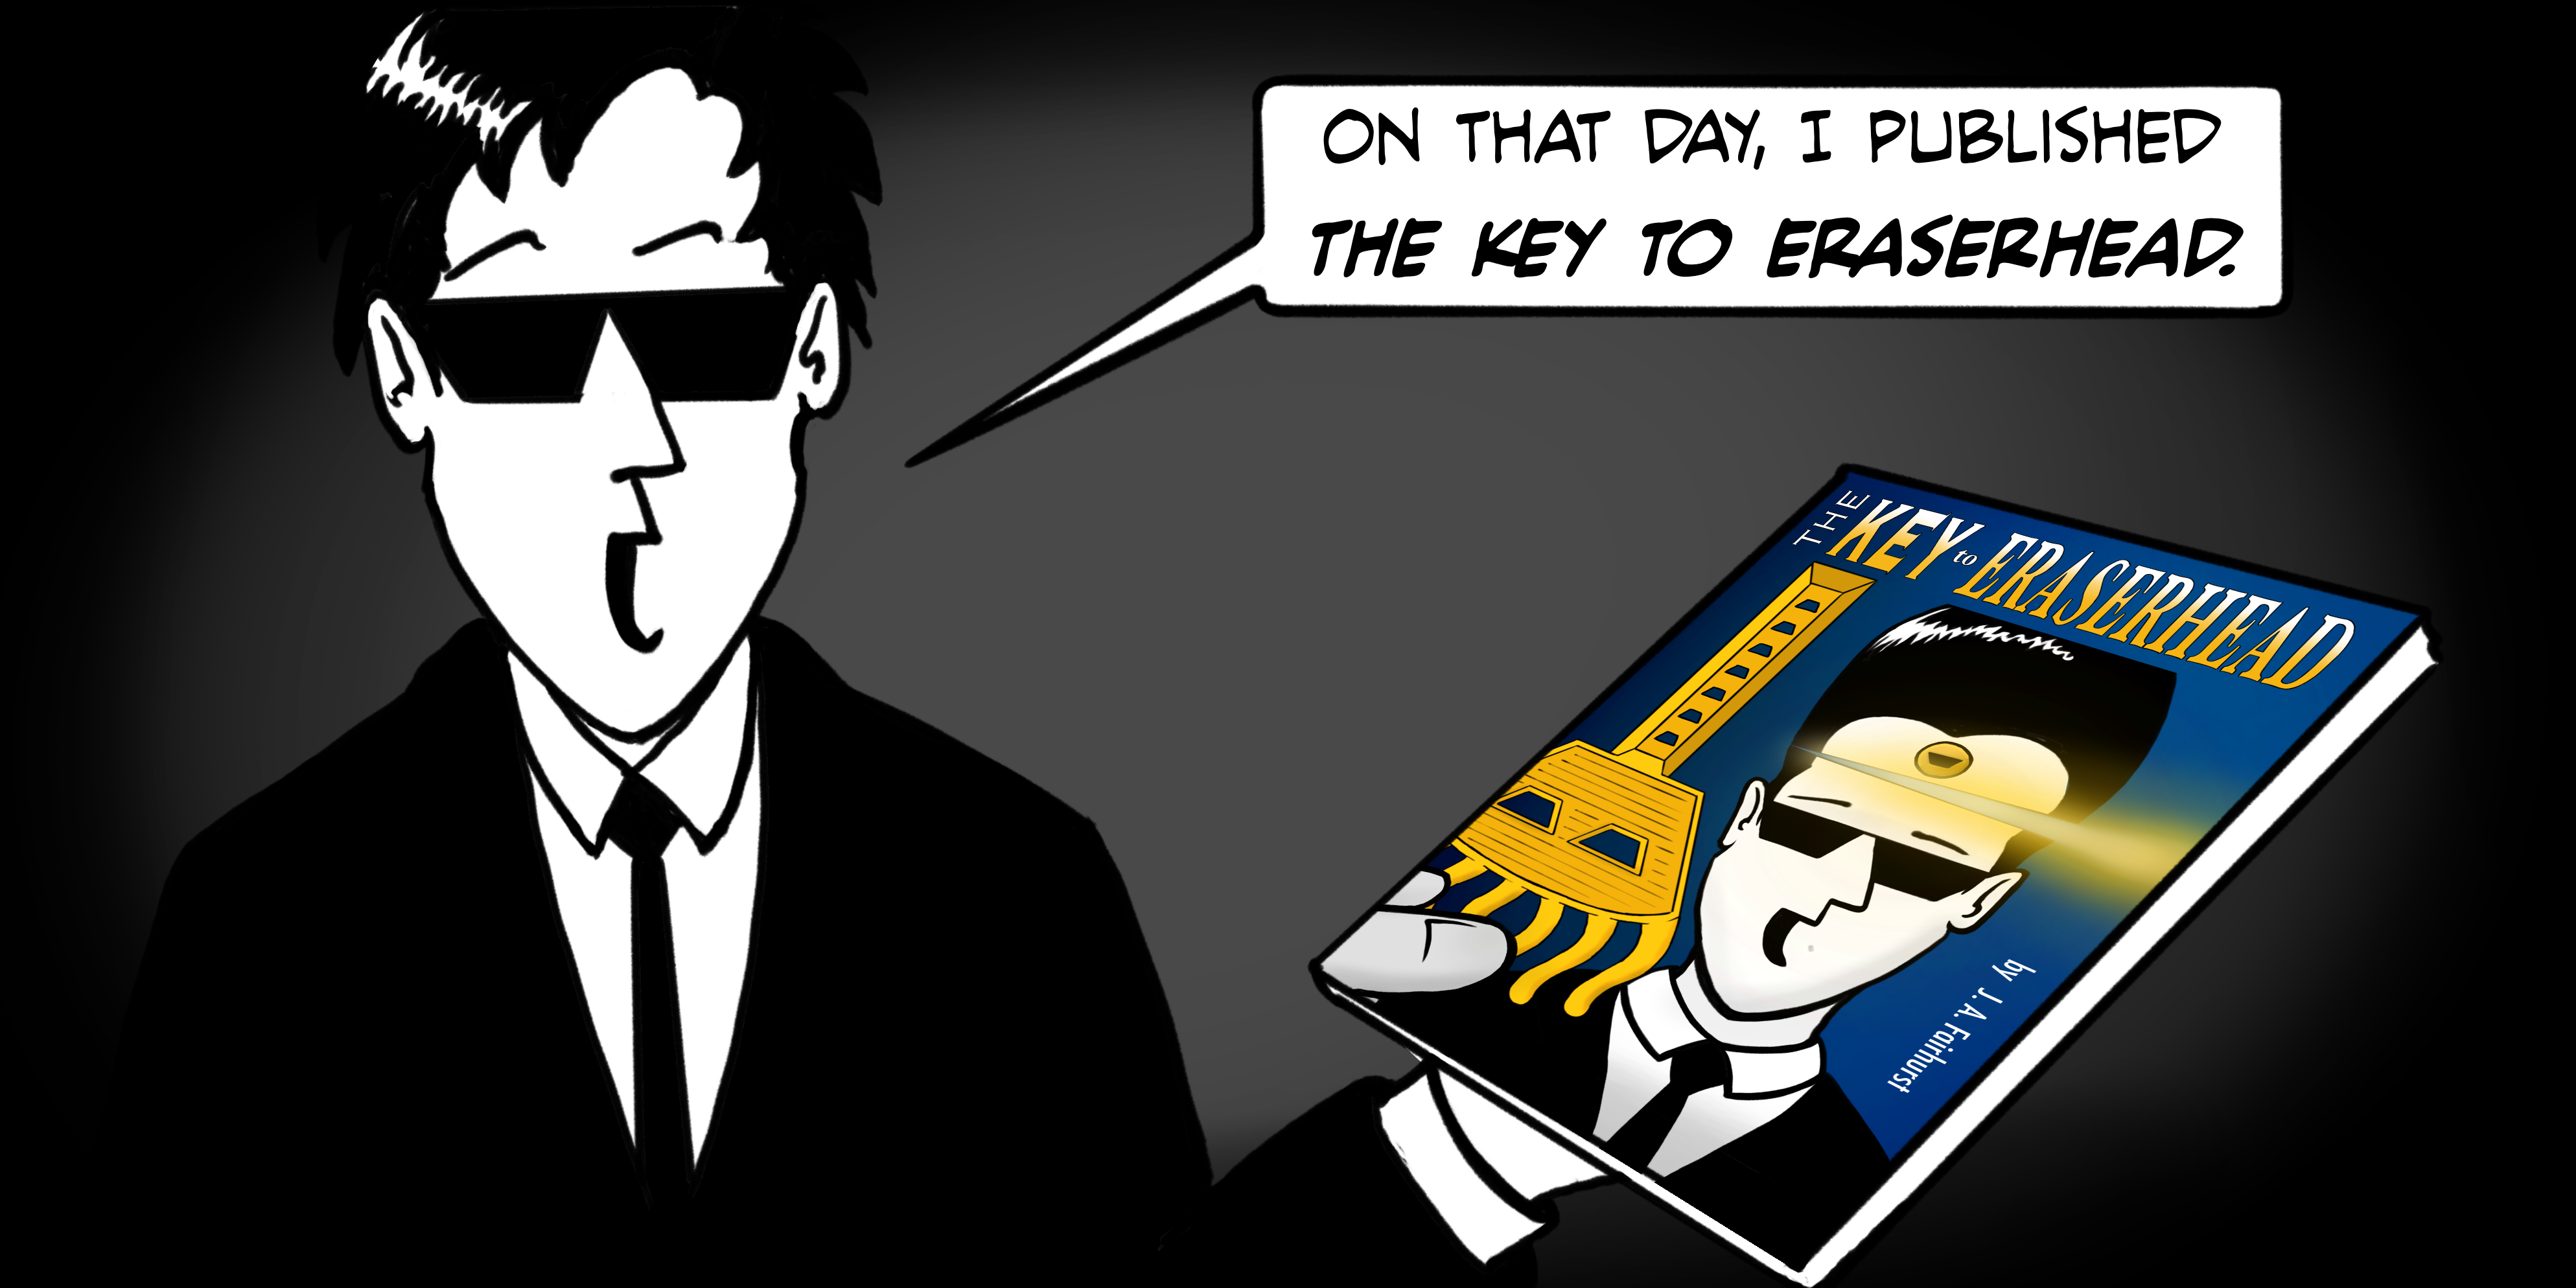 I published The Key to Eraserhead.